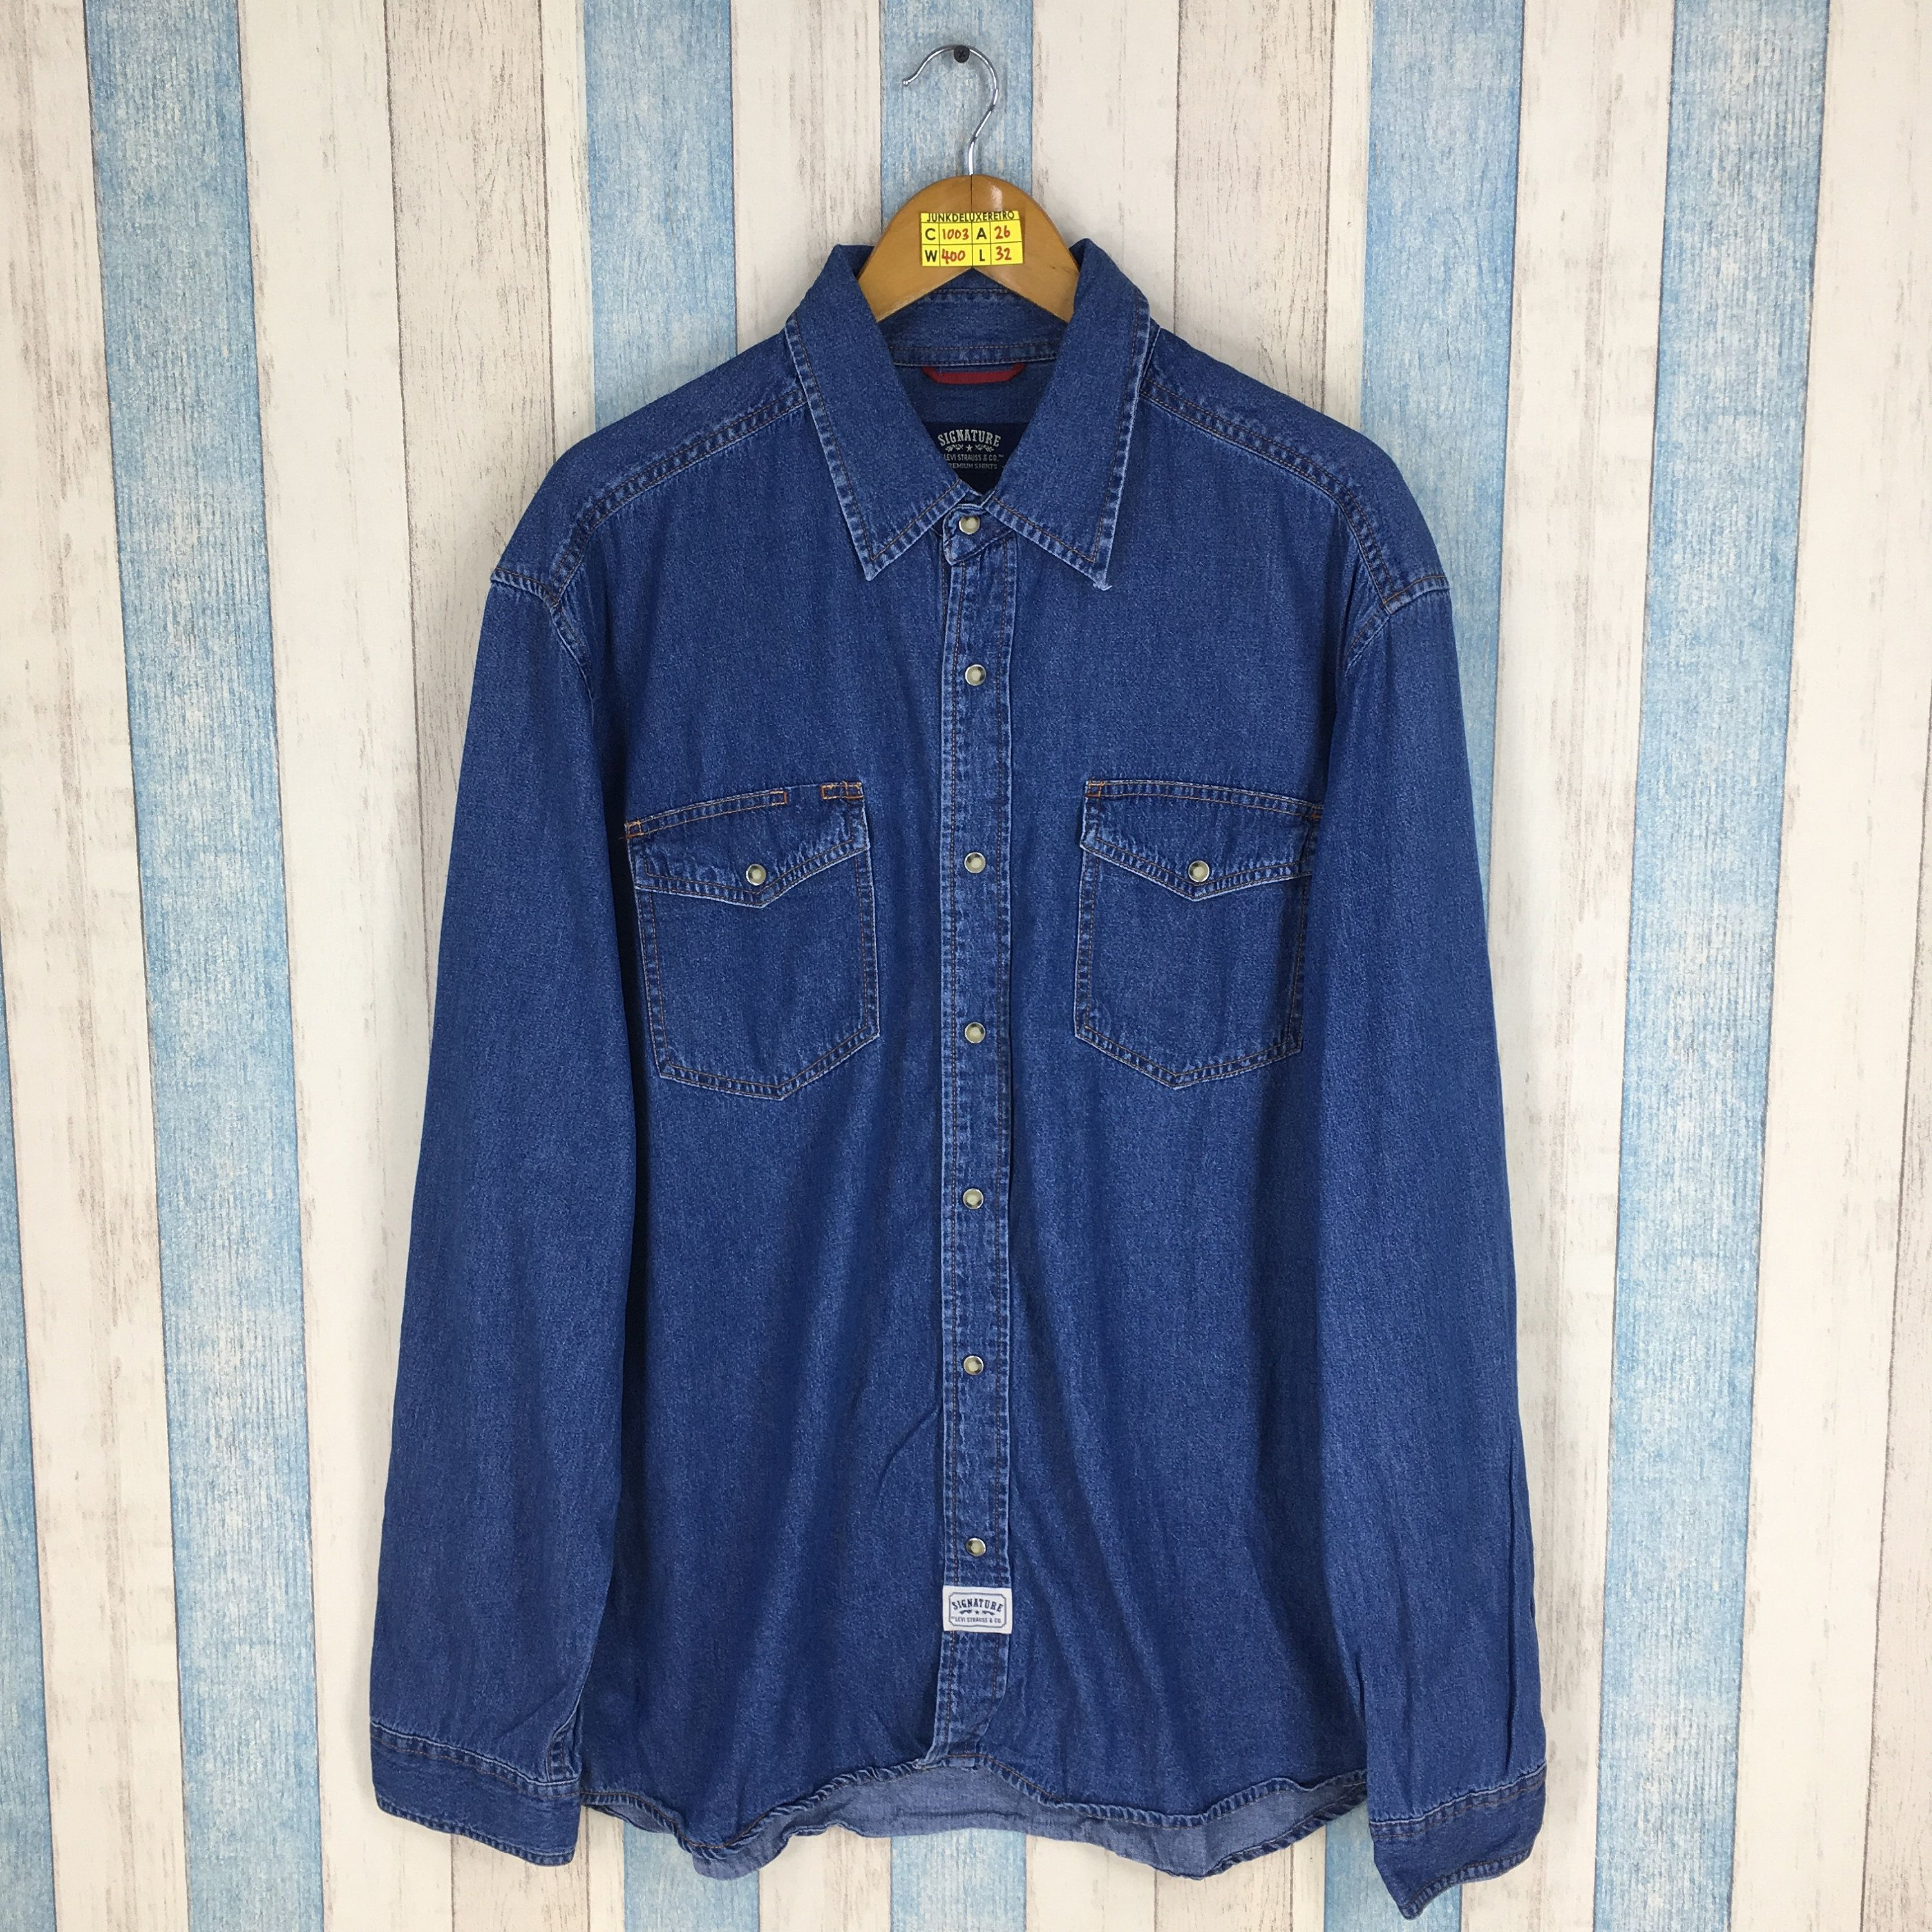 fda7614fff1 Polo By POLO GROUND Denim Shirt Xlarge Vintage 90 s Polo Ground Buttondown  Shirt Flannel Western Blue Jeans Shirt Oversize Size XL in 2019